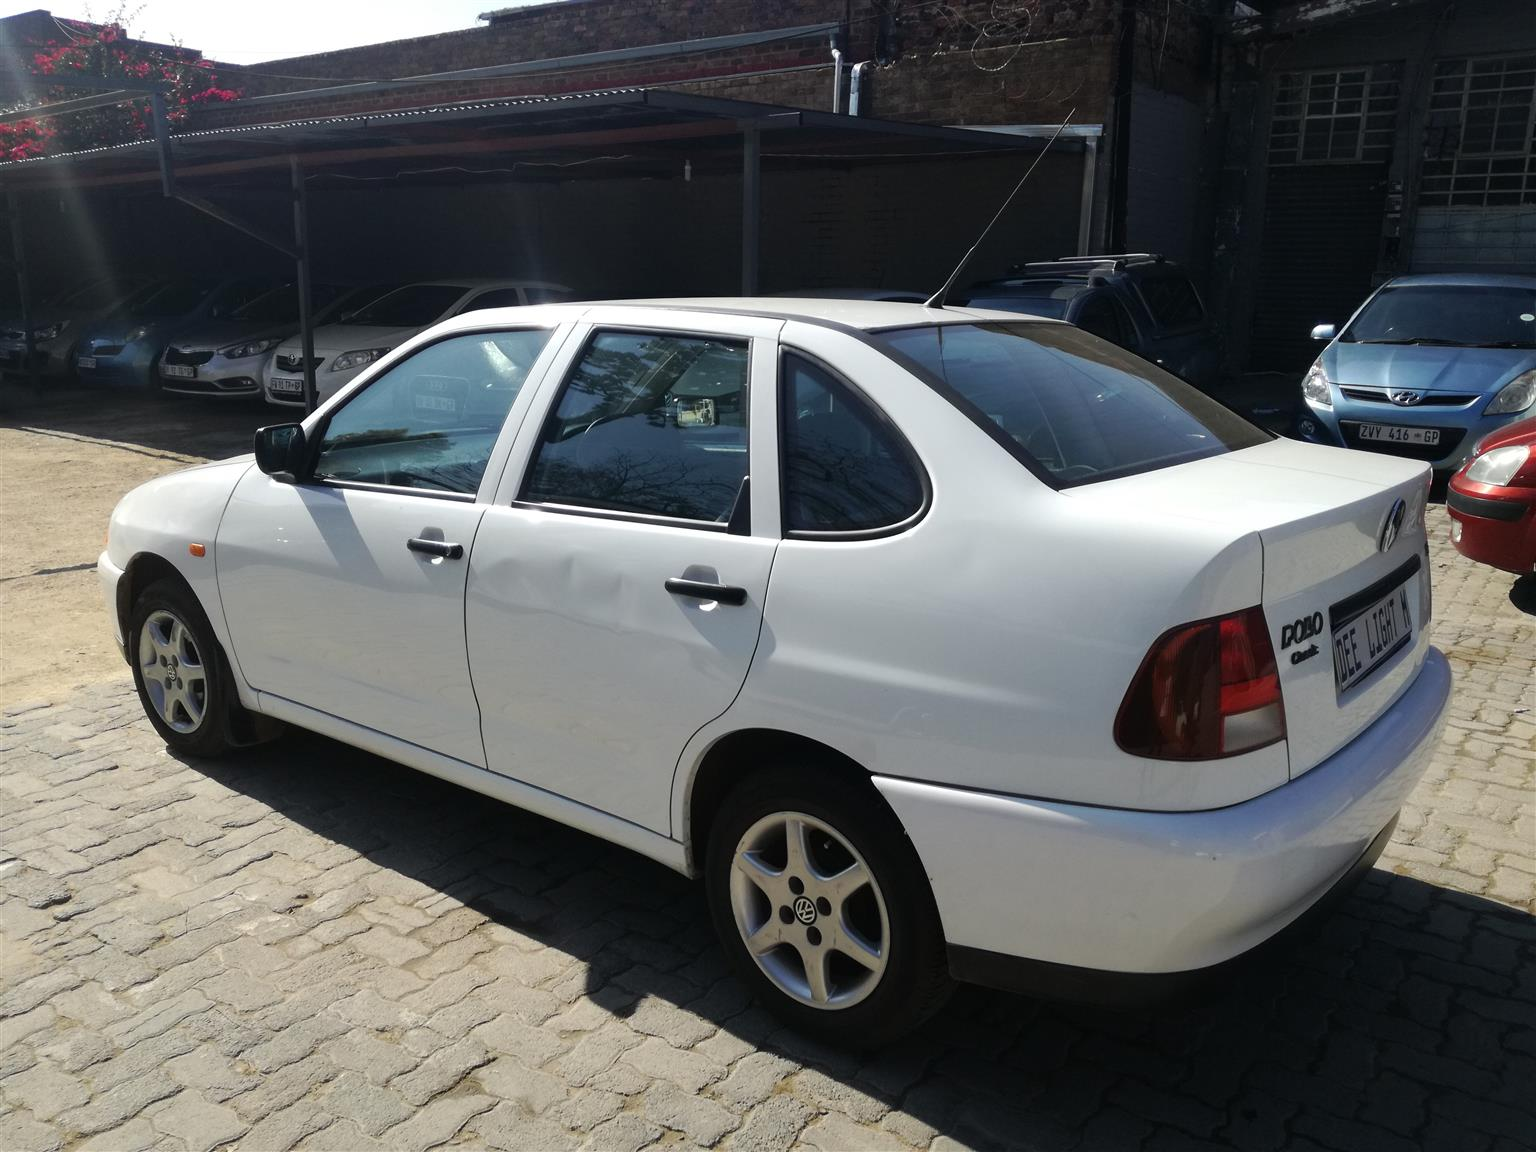 Image Of Gumtree Cars Under 15000 In Gauteng S A 2004 Nissan Almera